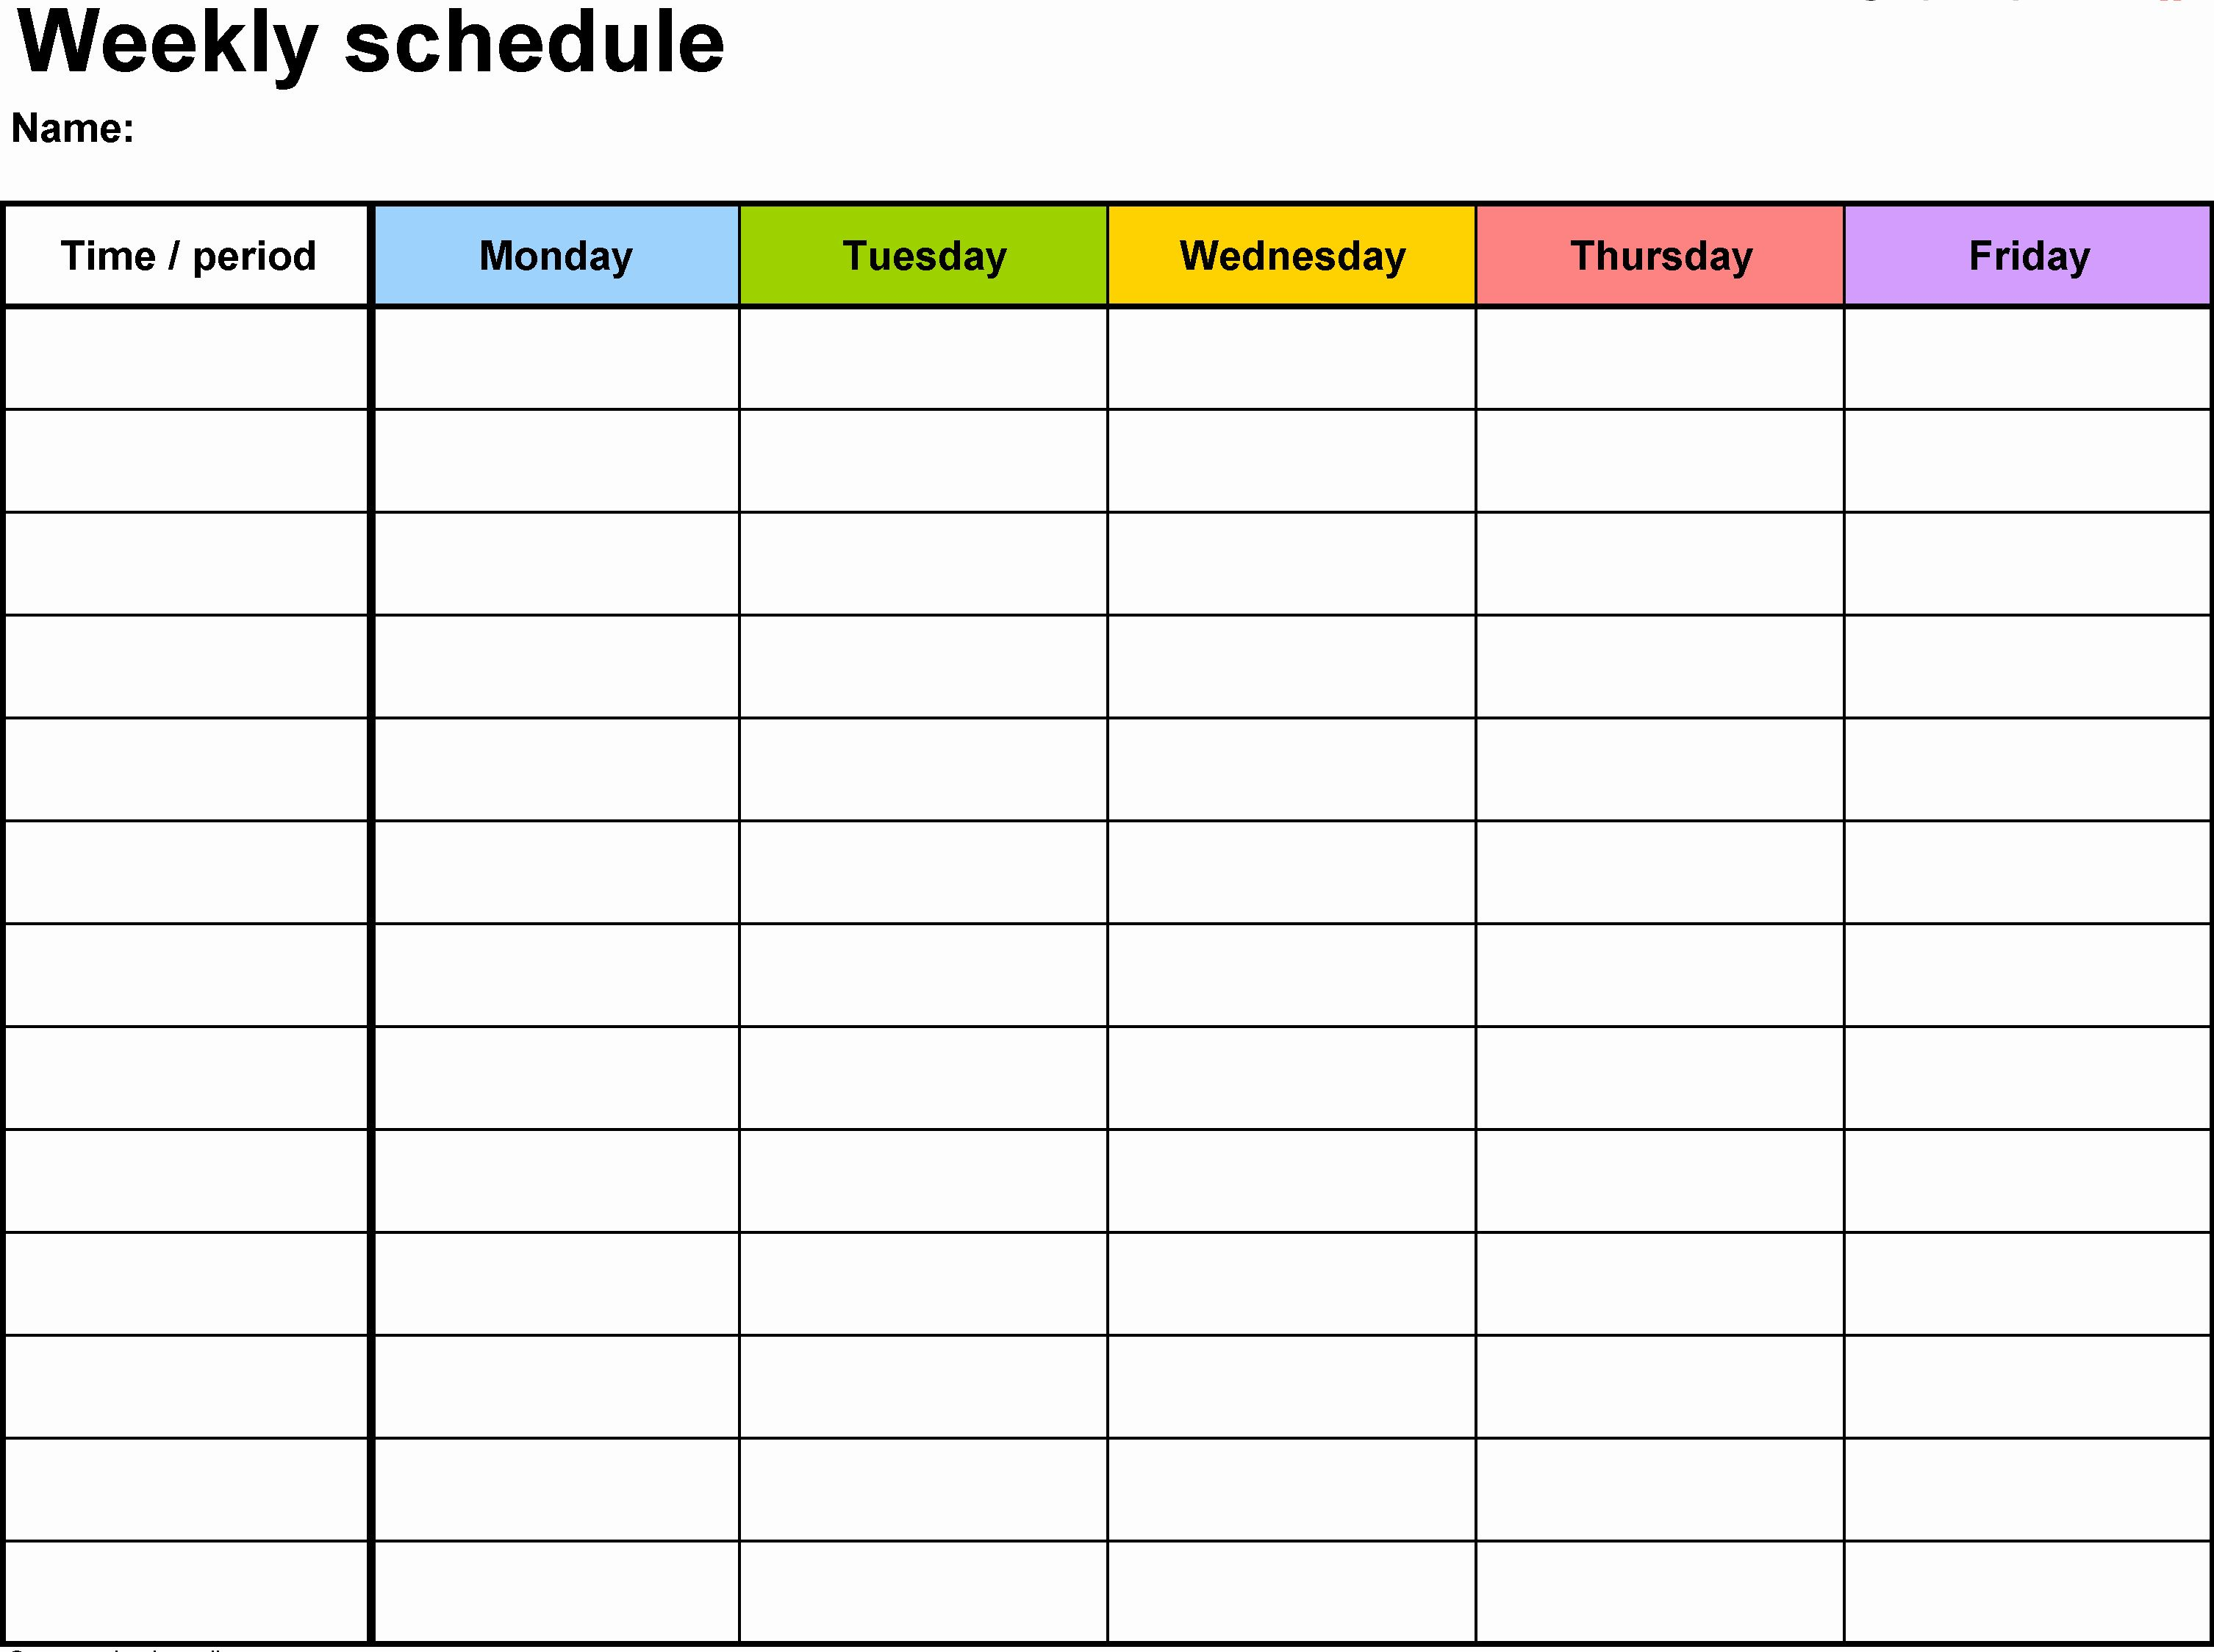 Daily Hourly Schedule Template Excel Best Of Weekly Calendar Template In 2020 Weekly Calendar Template Calendar Template Monthly Calendar Template